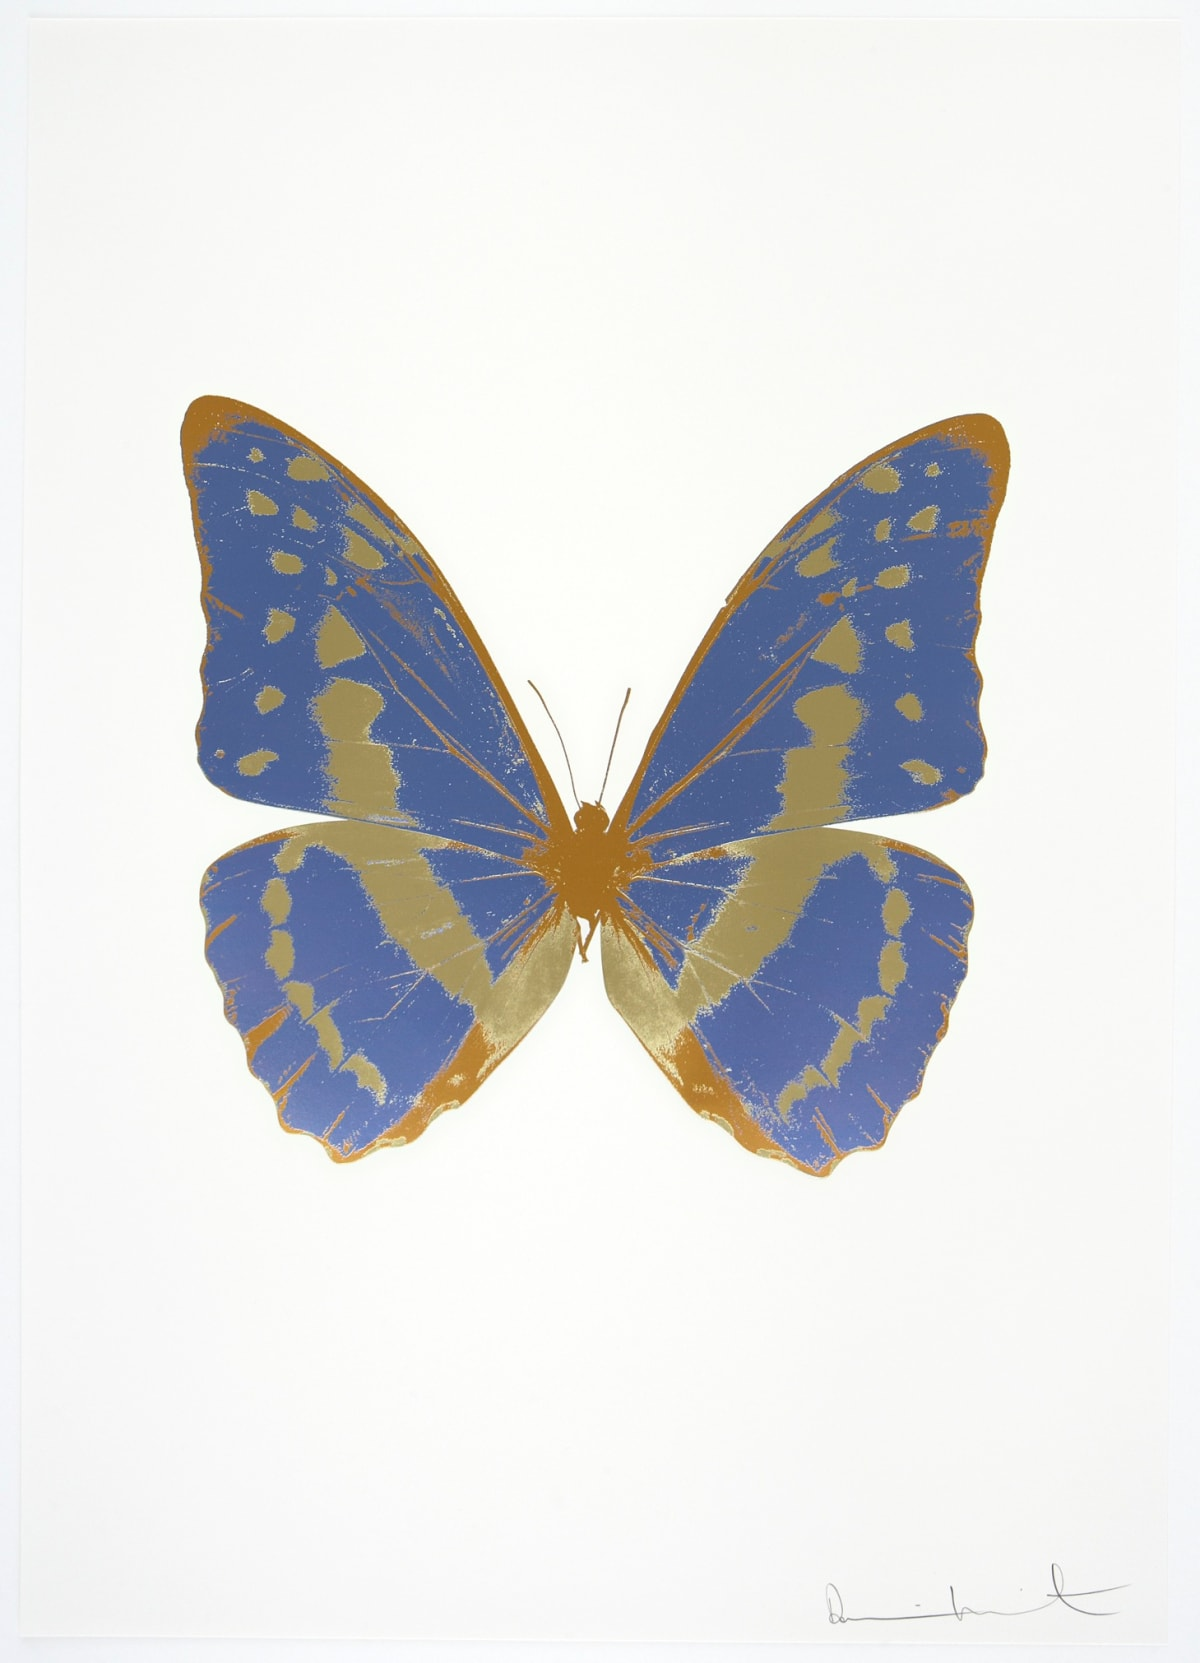 Damien Hirst The Souls III - Cornflower Blue/Cool Gold/European Gold, 2010 3 colour foil block on 300gsm Arches 88 archival paper. Signed and numbered. Published by Paul Stolper and Other Criteria 72 x 51cm OC7952 / 660-55 Edition of 15